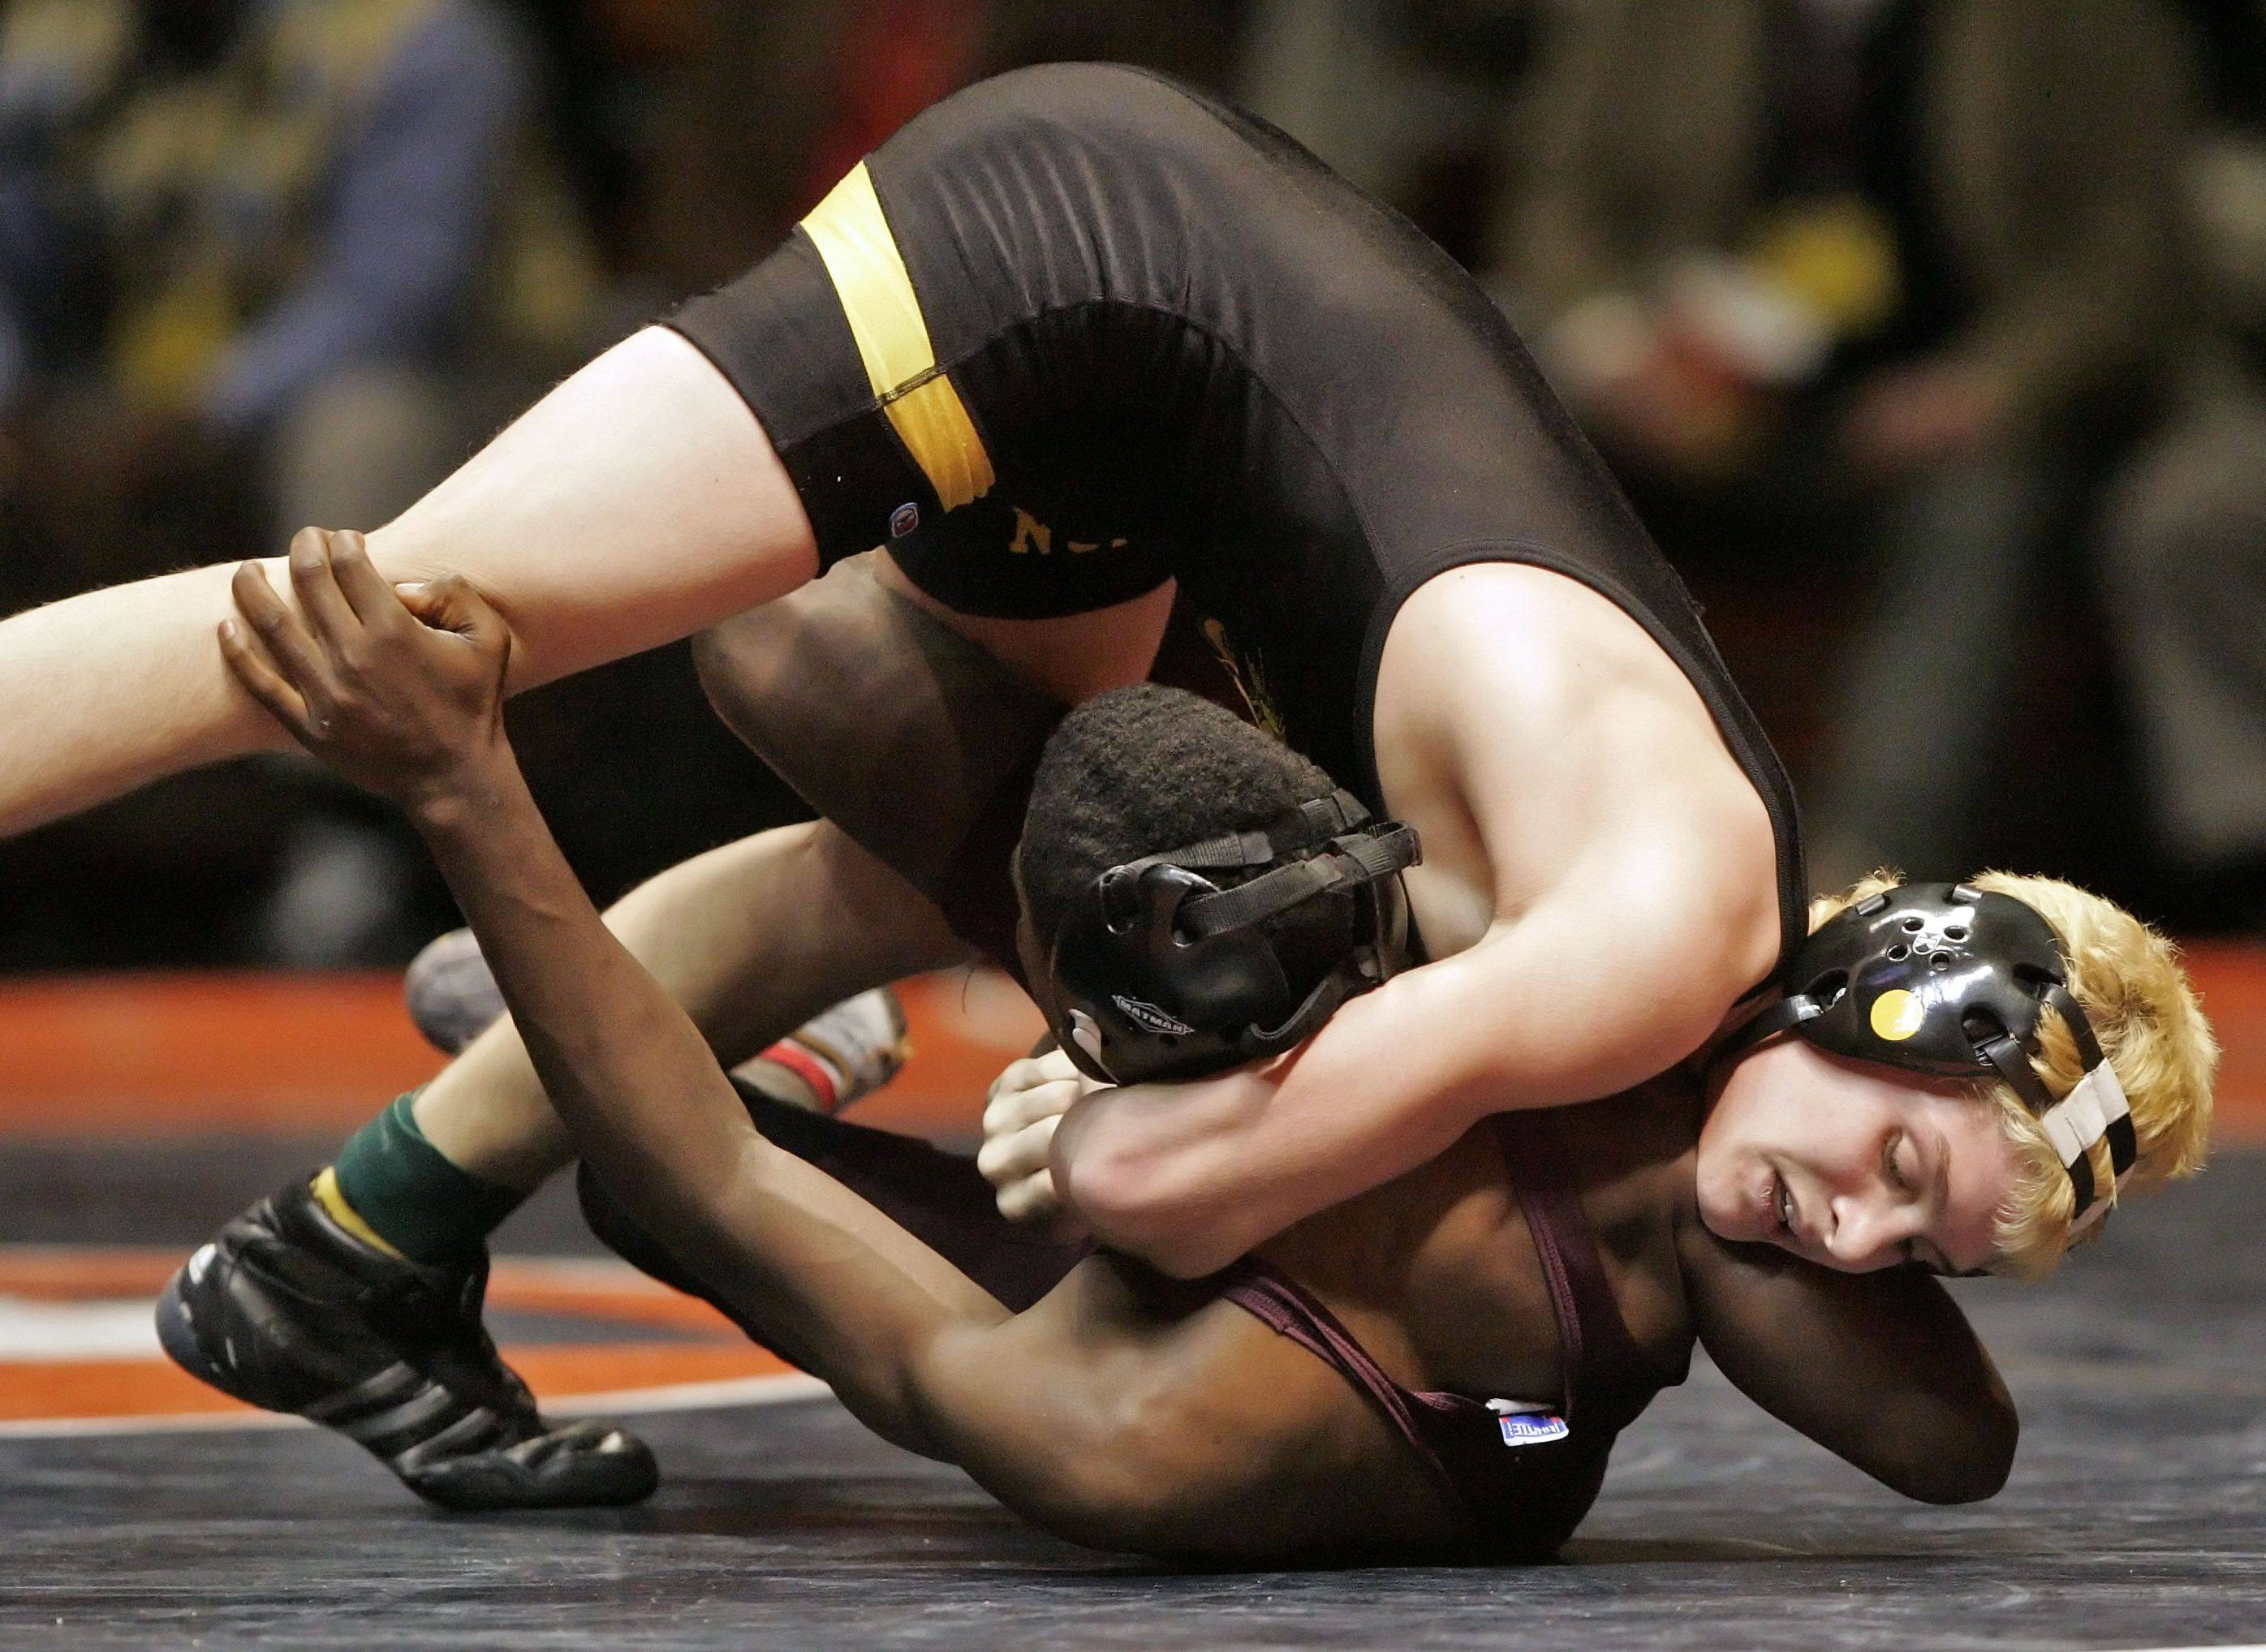 Glenbard North's Johnny Gosinski wrestles Nate Smith of Austin Polytechnic at 112 pounds during state wrestling Friday in Champaign.